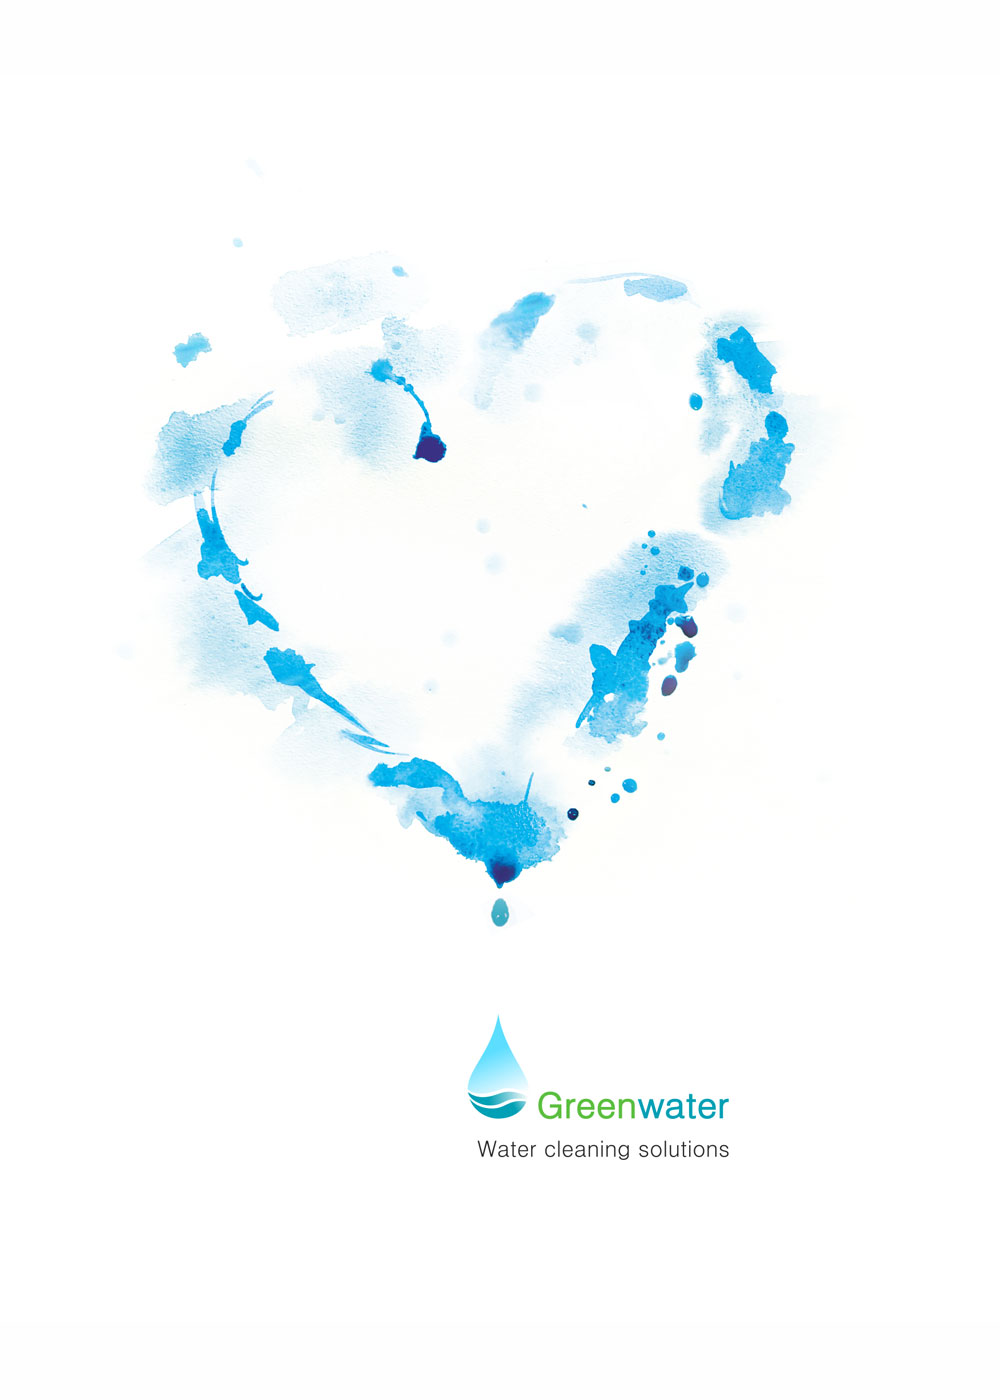 illustrations-greenwater-heart-by-Lanagraphic